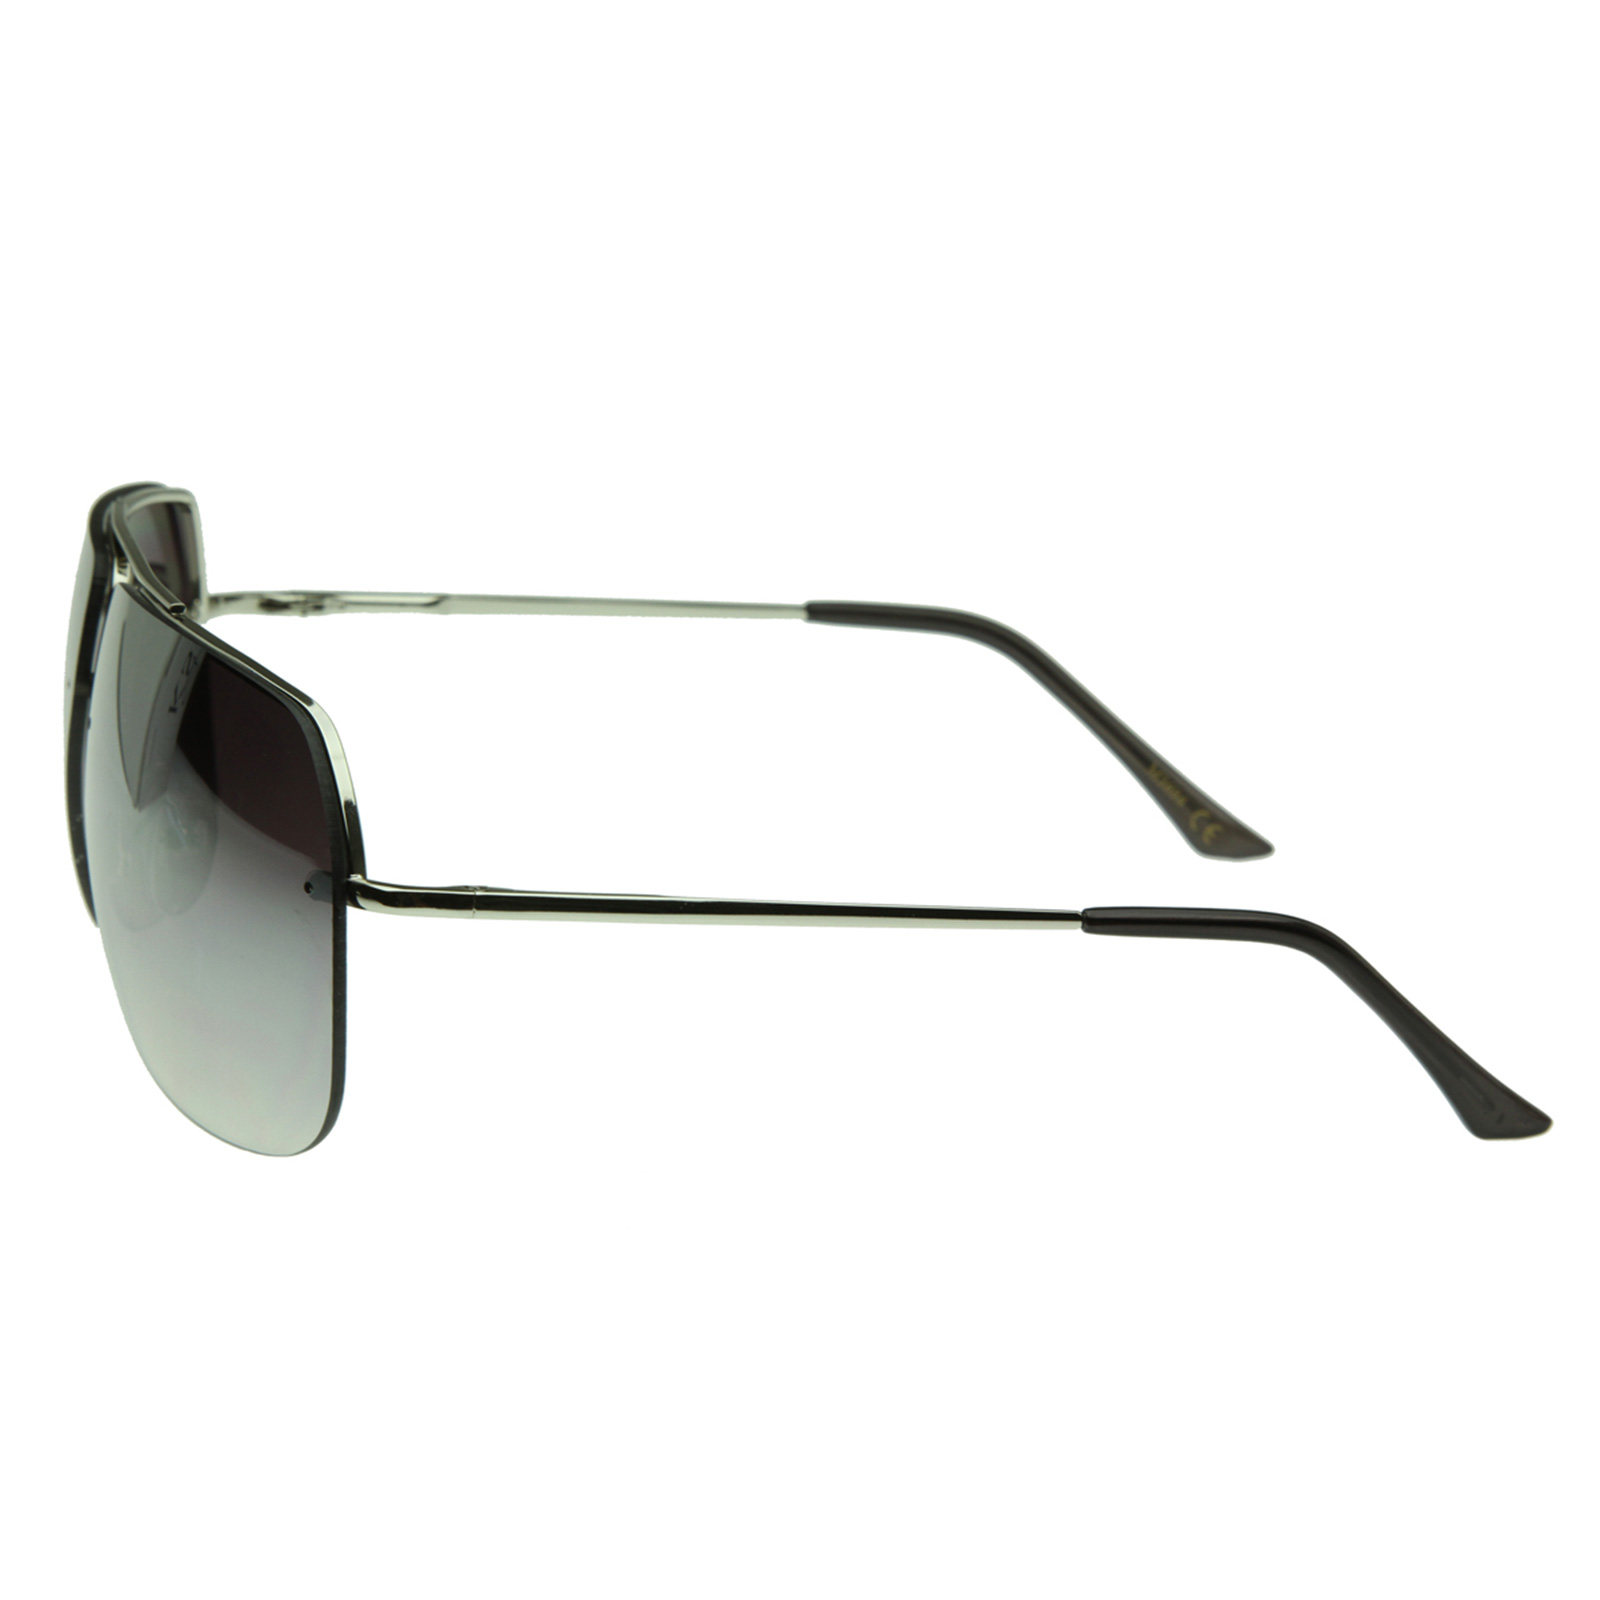 New Mens Frameless Quality Square Rimless Metal Aviator ...